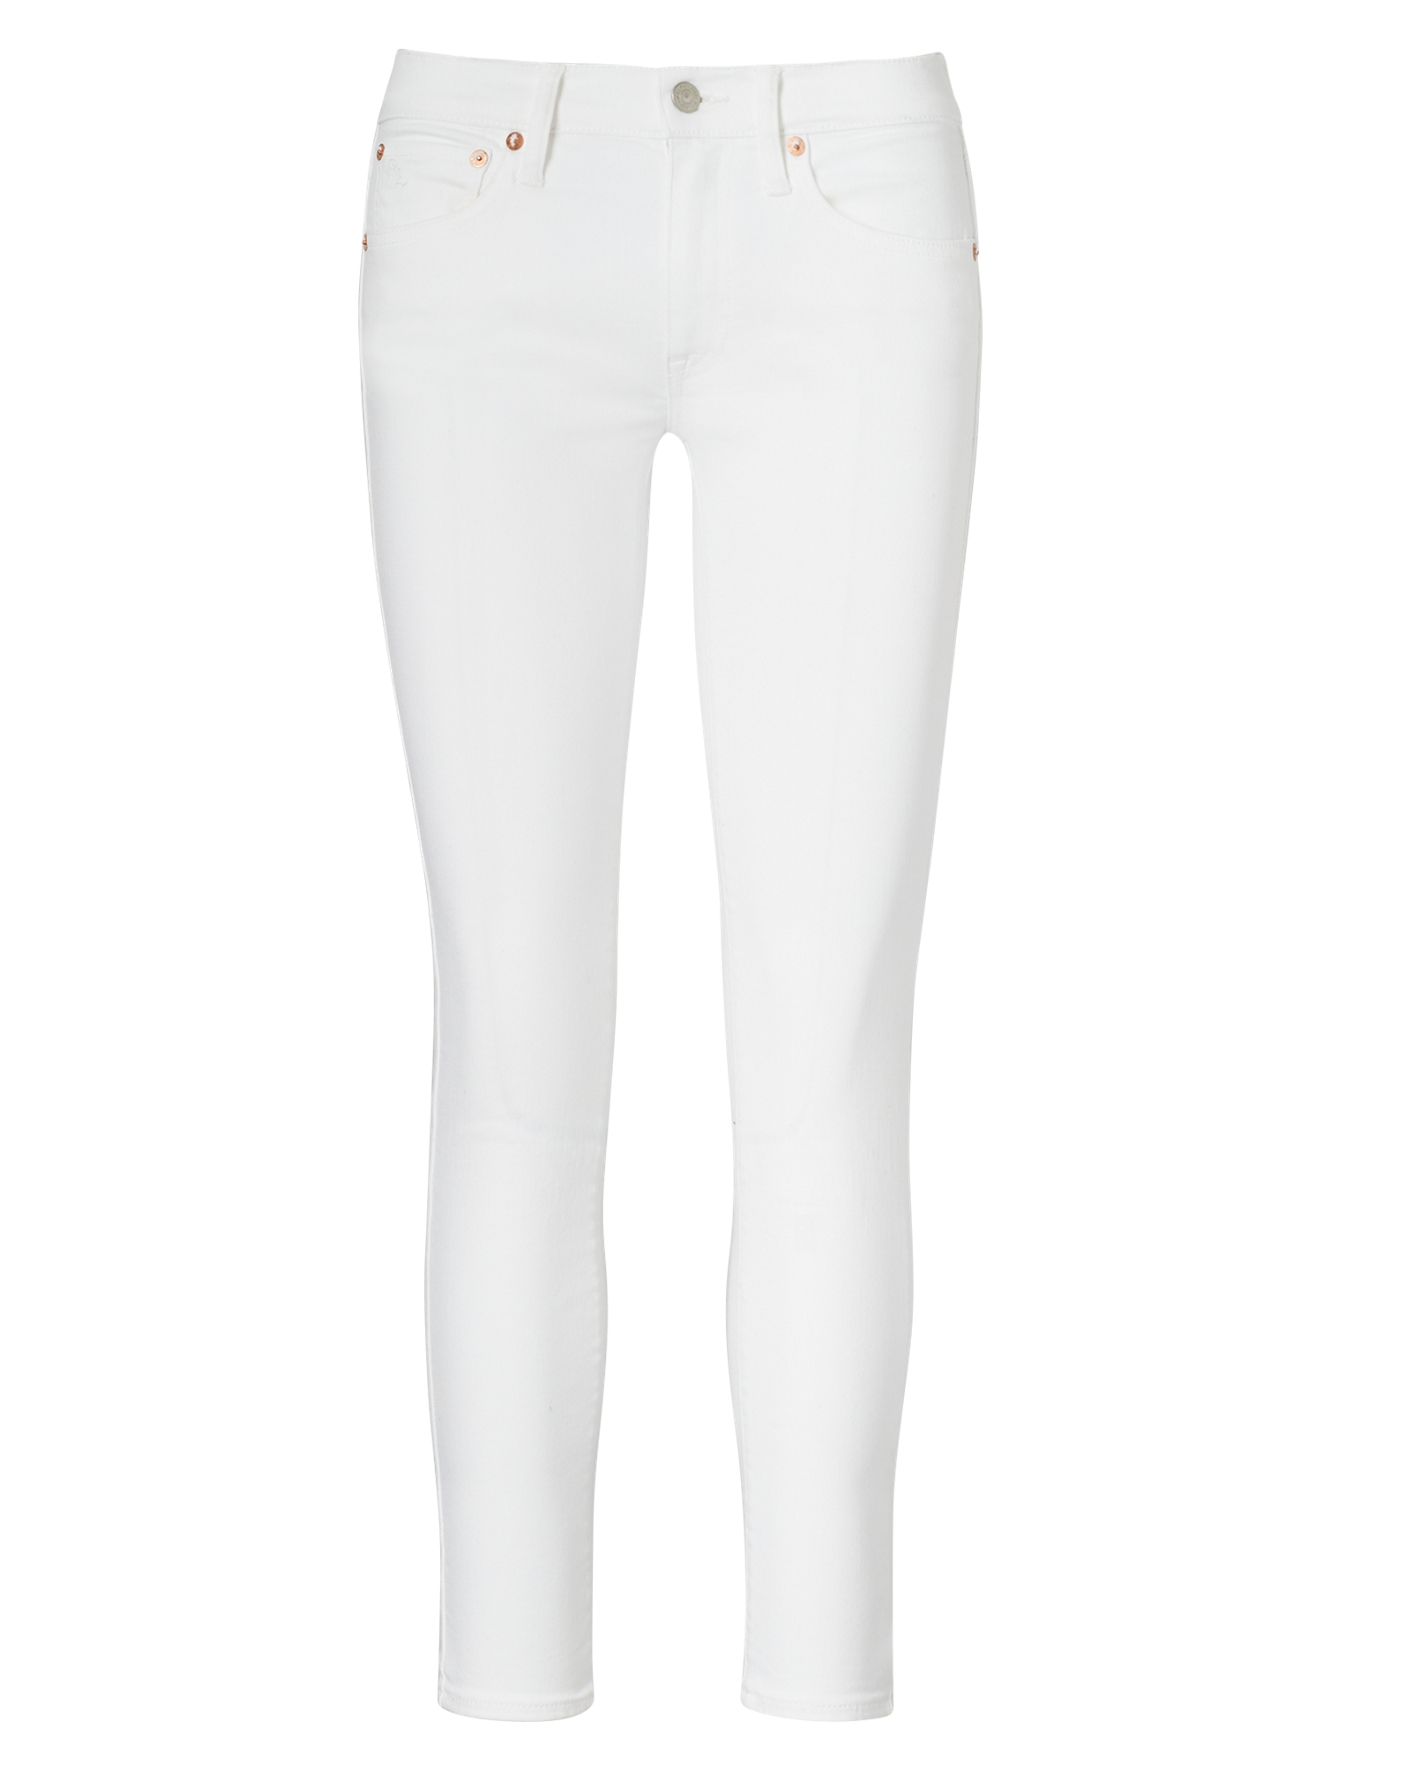 Women's Designer Jeans & Ladies' Denim | Ralph Lauren